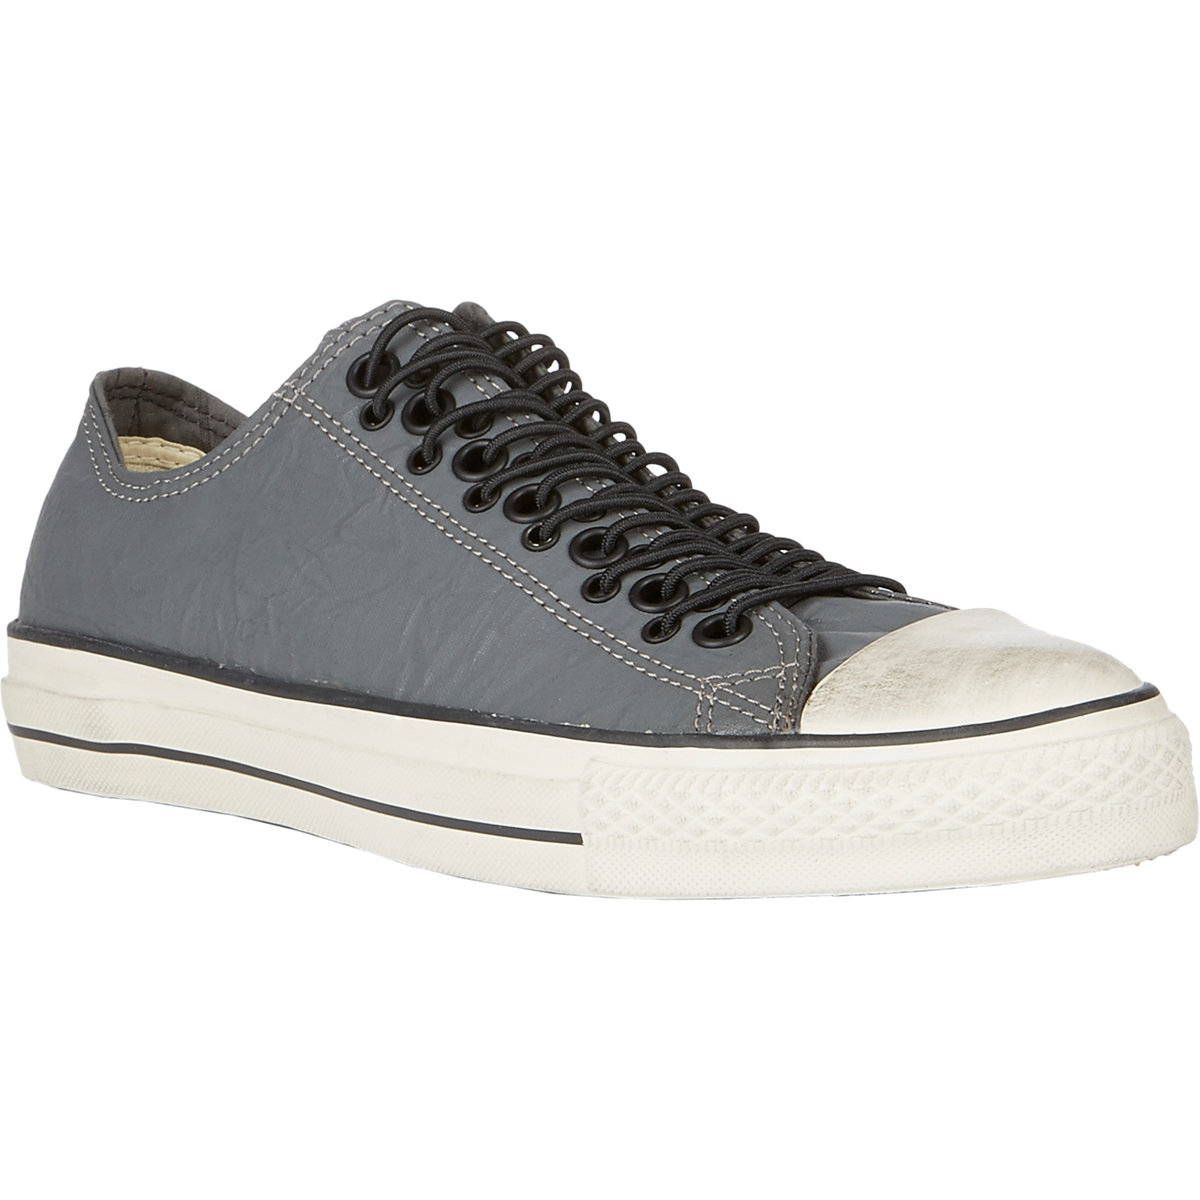 bb505cf19a3 Converse Multi-Eyelet Chuck Taylor Sneakers in Gray for Men - Lyst